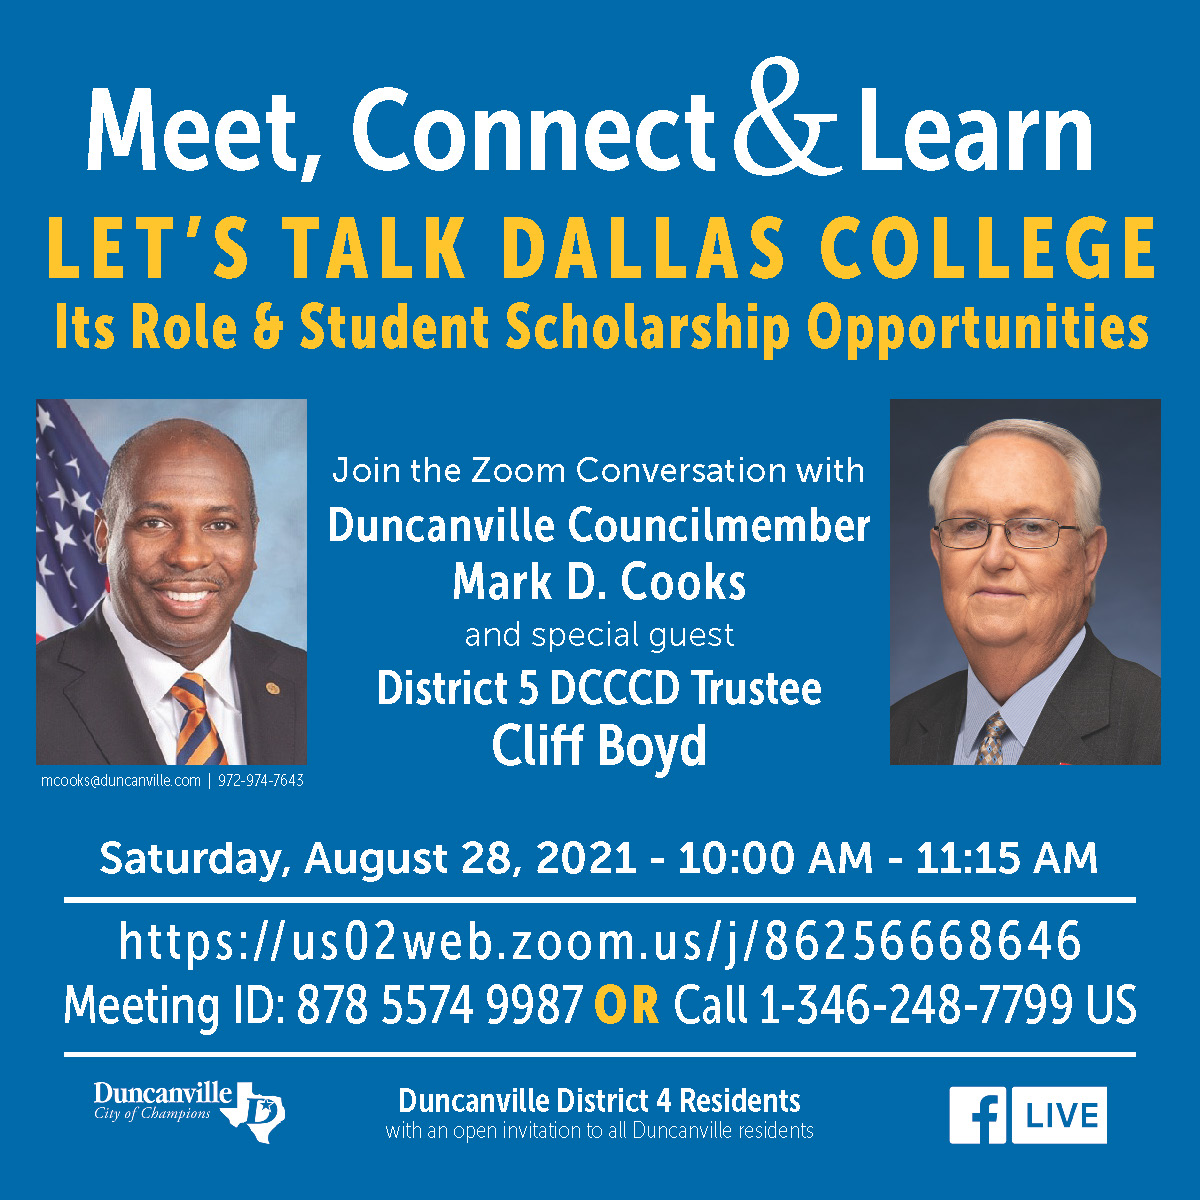 Meet, Connect & Learn with Councilmember Mark D. Cooks